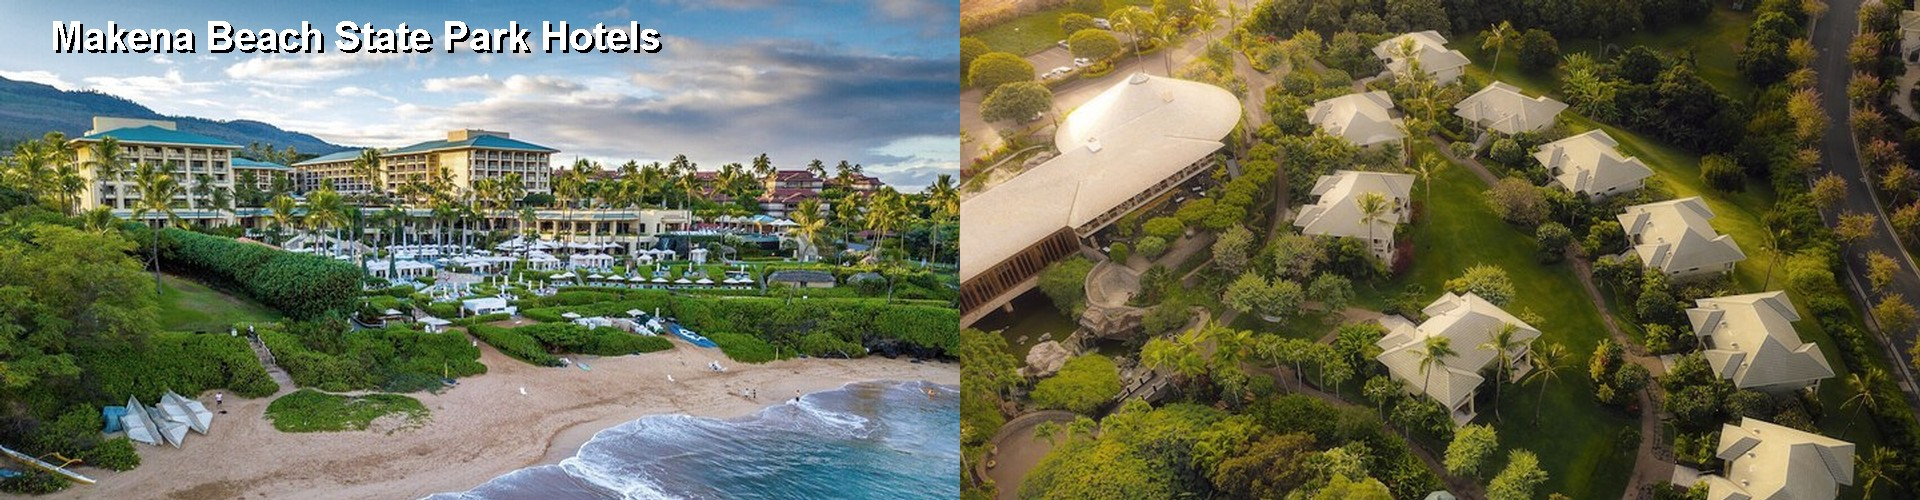 5 Best Hotels near Makena Beach State Park